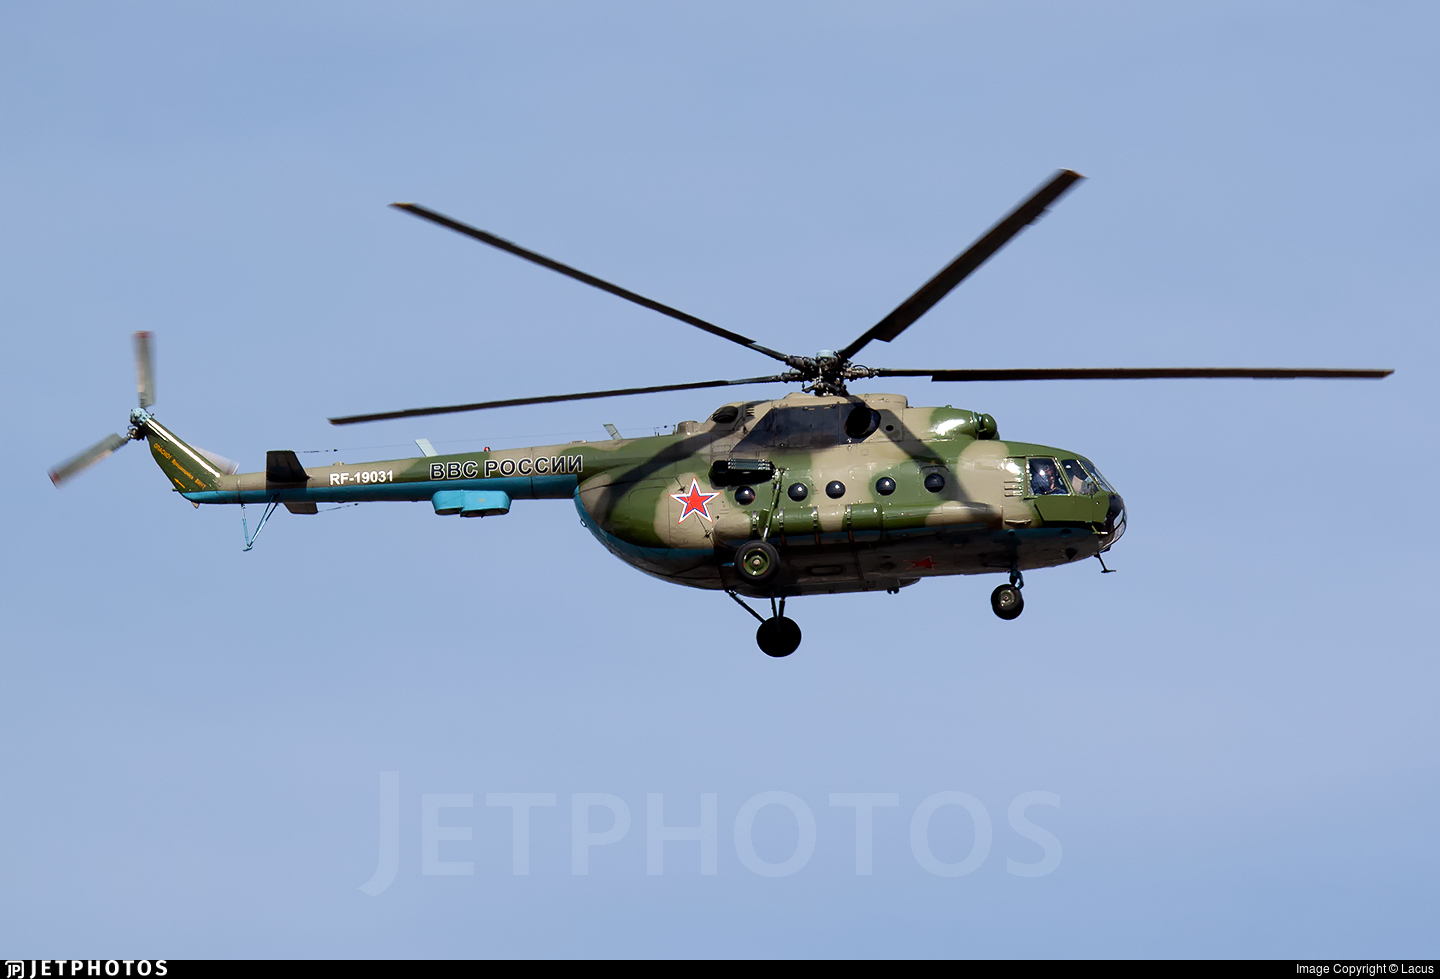 RF-19031 - Mil Mi-8MT Hip - Russia - Air Force